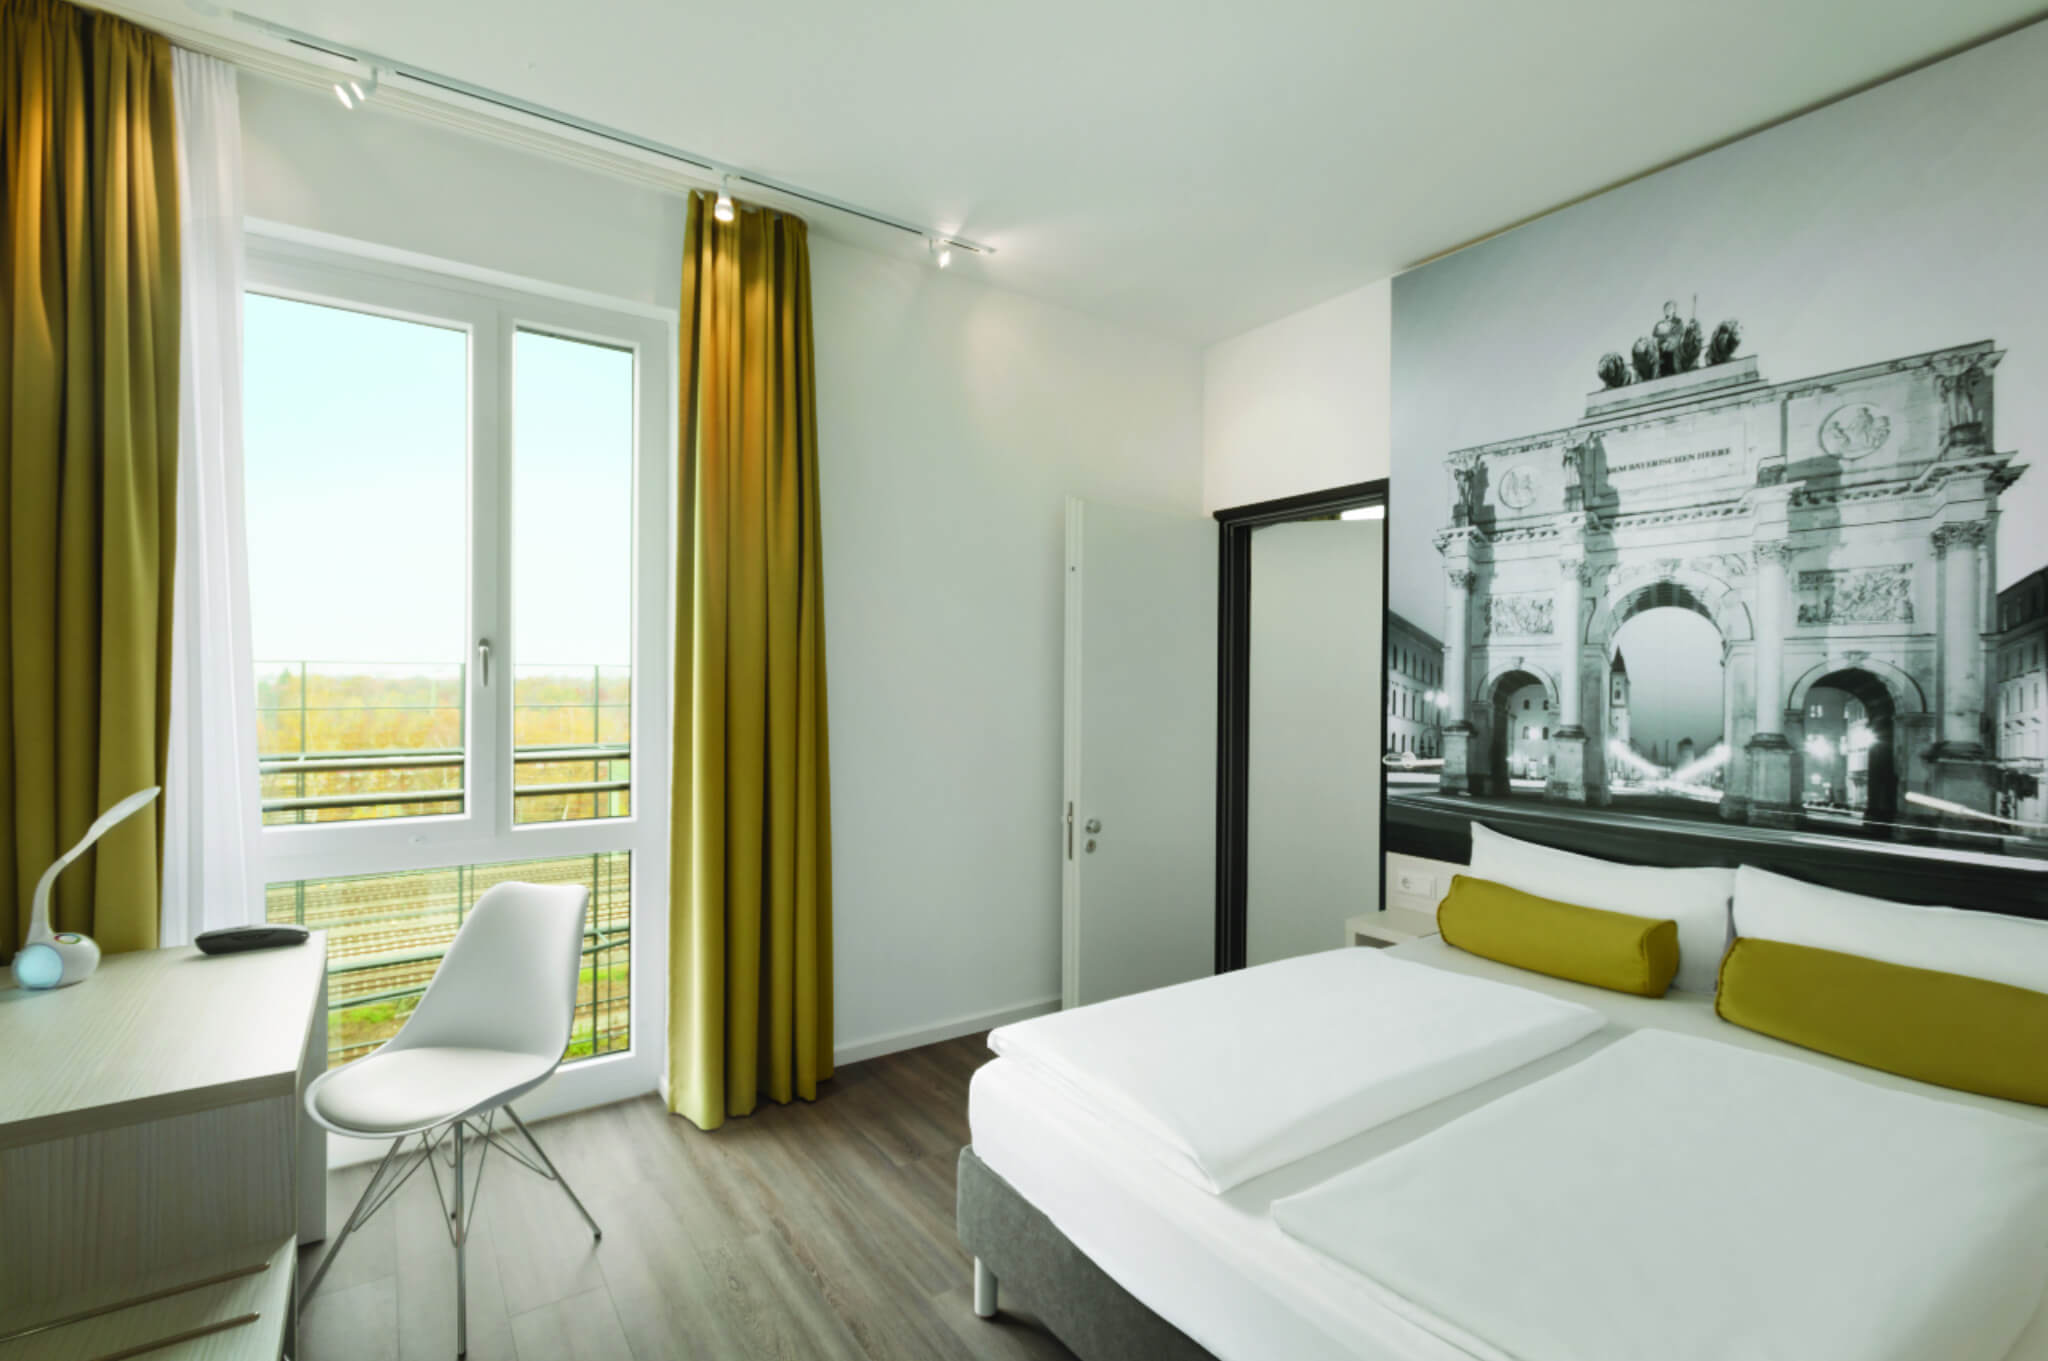 Super 8 by Wyndham Munich City West in München.